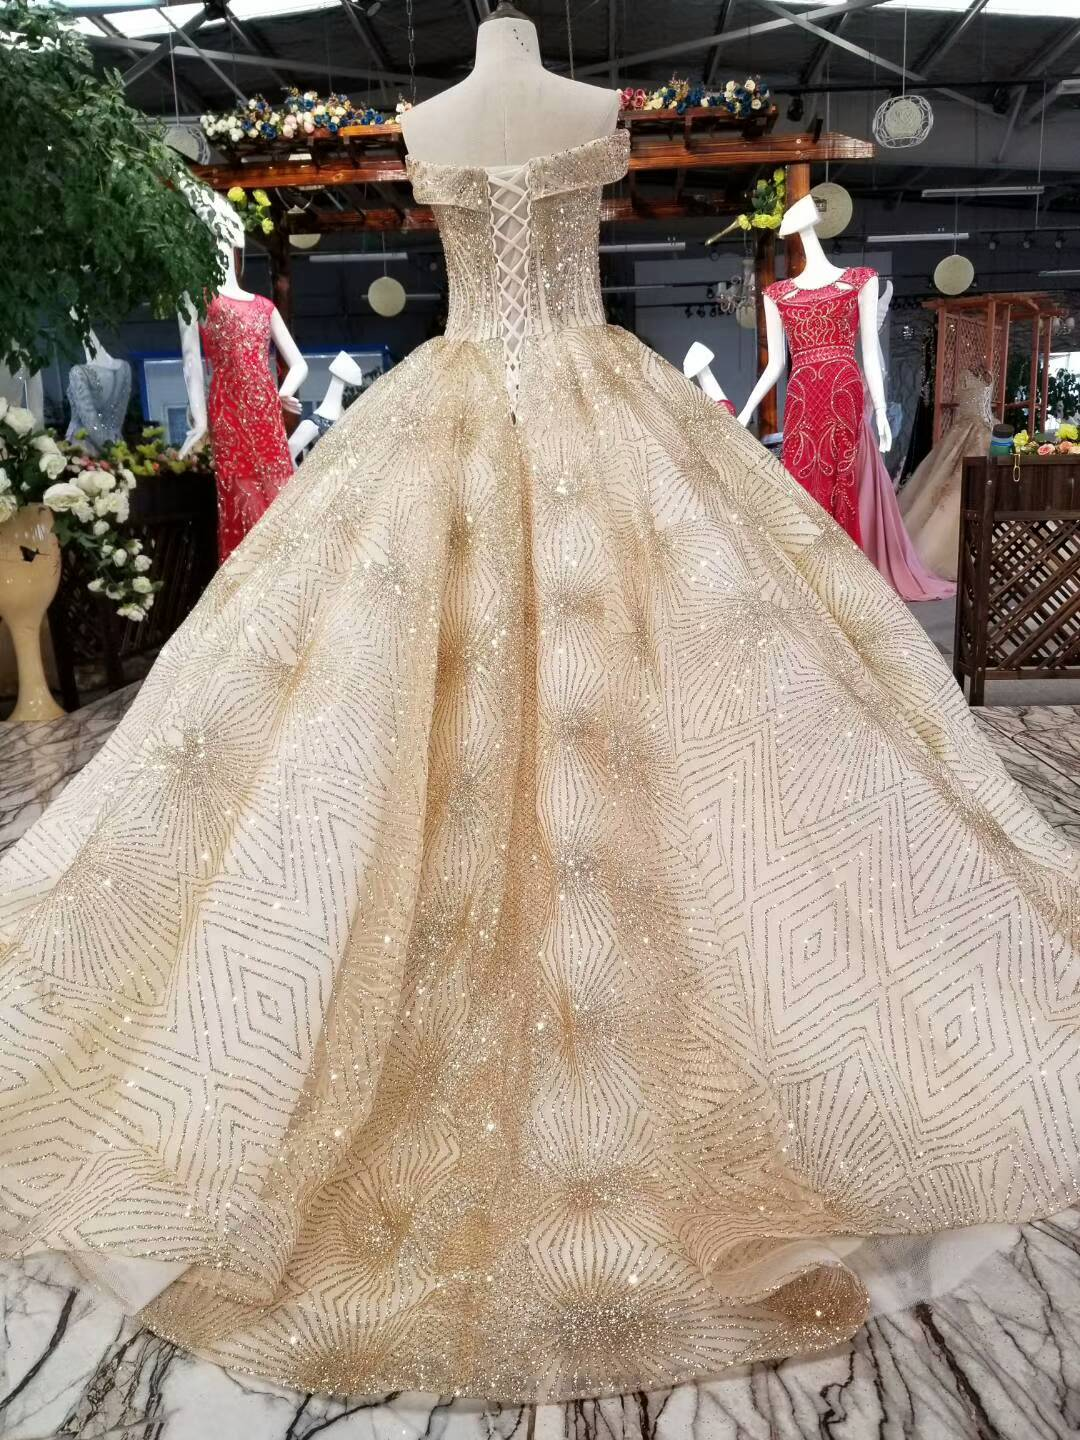 Luxury Gold Glitter Mesh Wedding Ball Gown Big Skirt 2018 Off The Shoulder  Bling Photography Wedding Dresses Lace Up Back-in Wedding Dresses from  Weddings ... 8262b4fb3df5